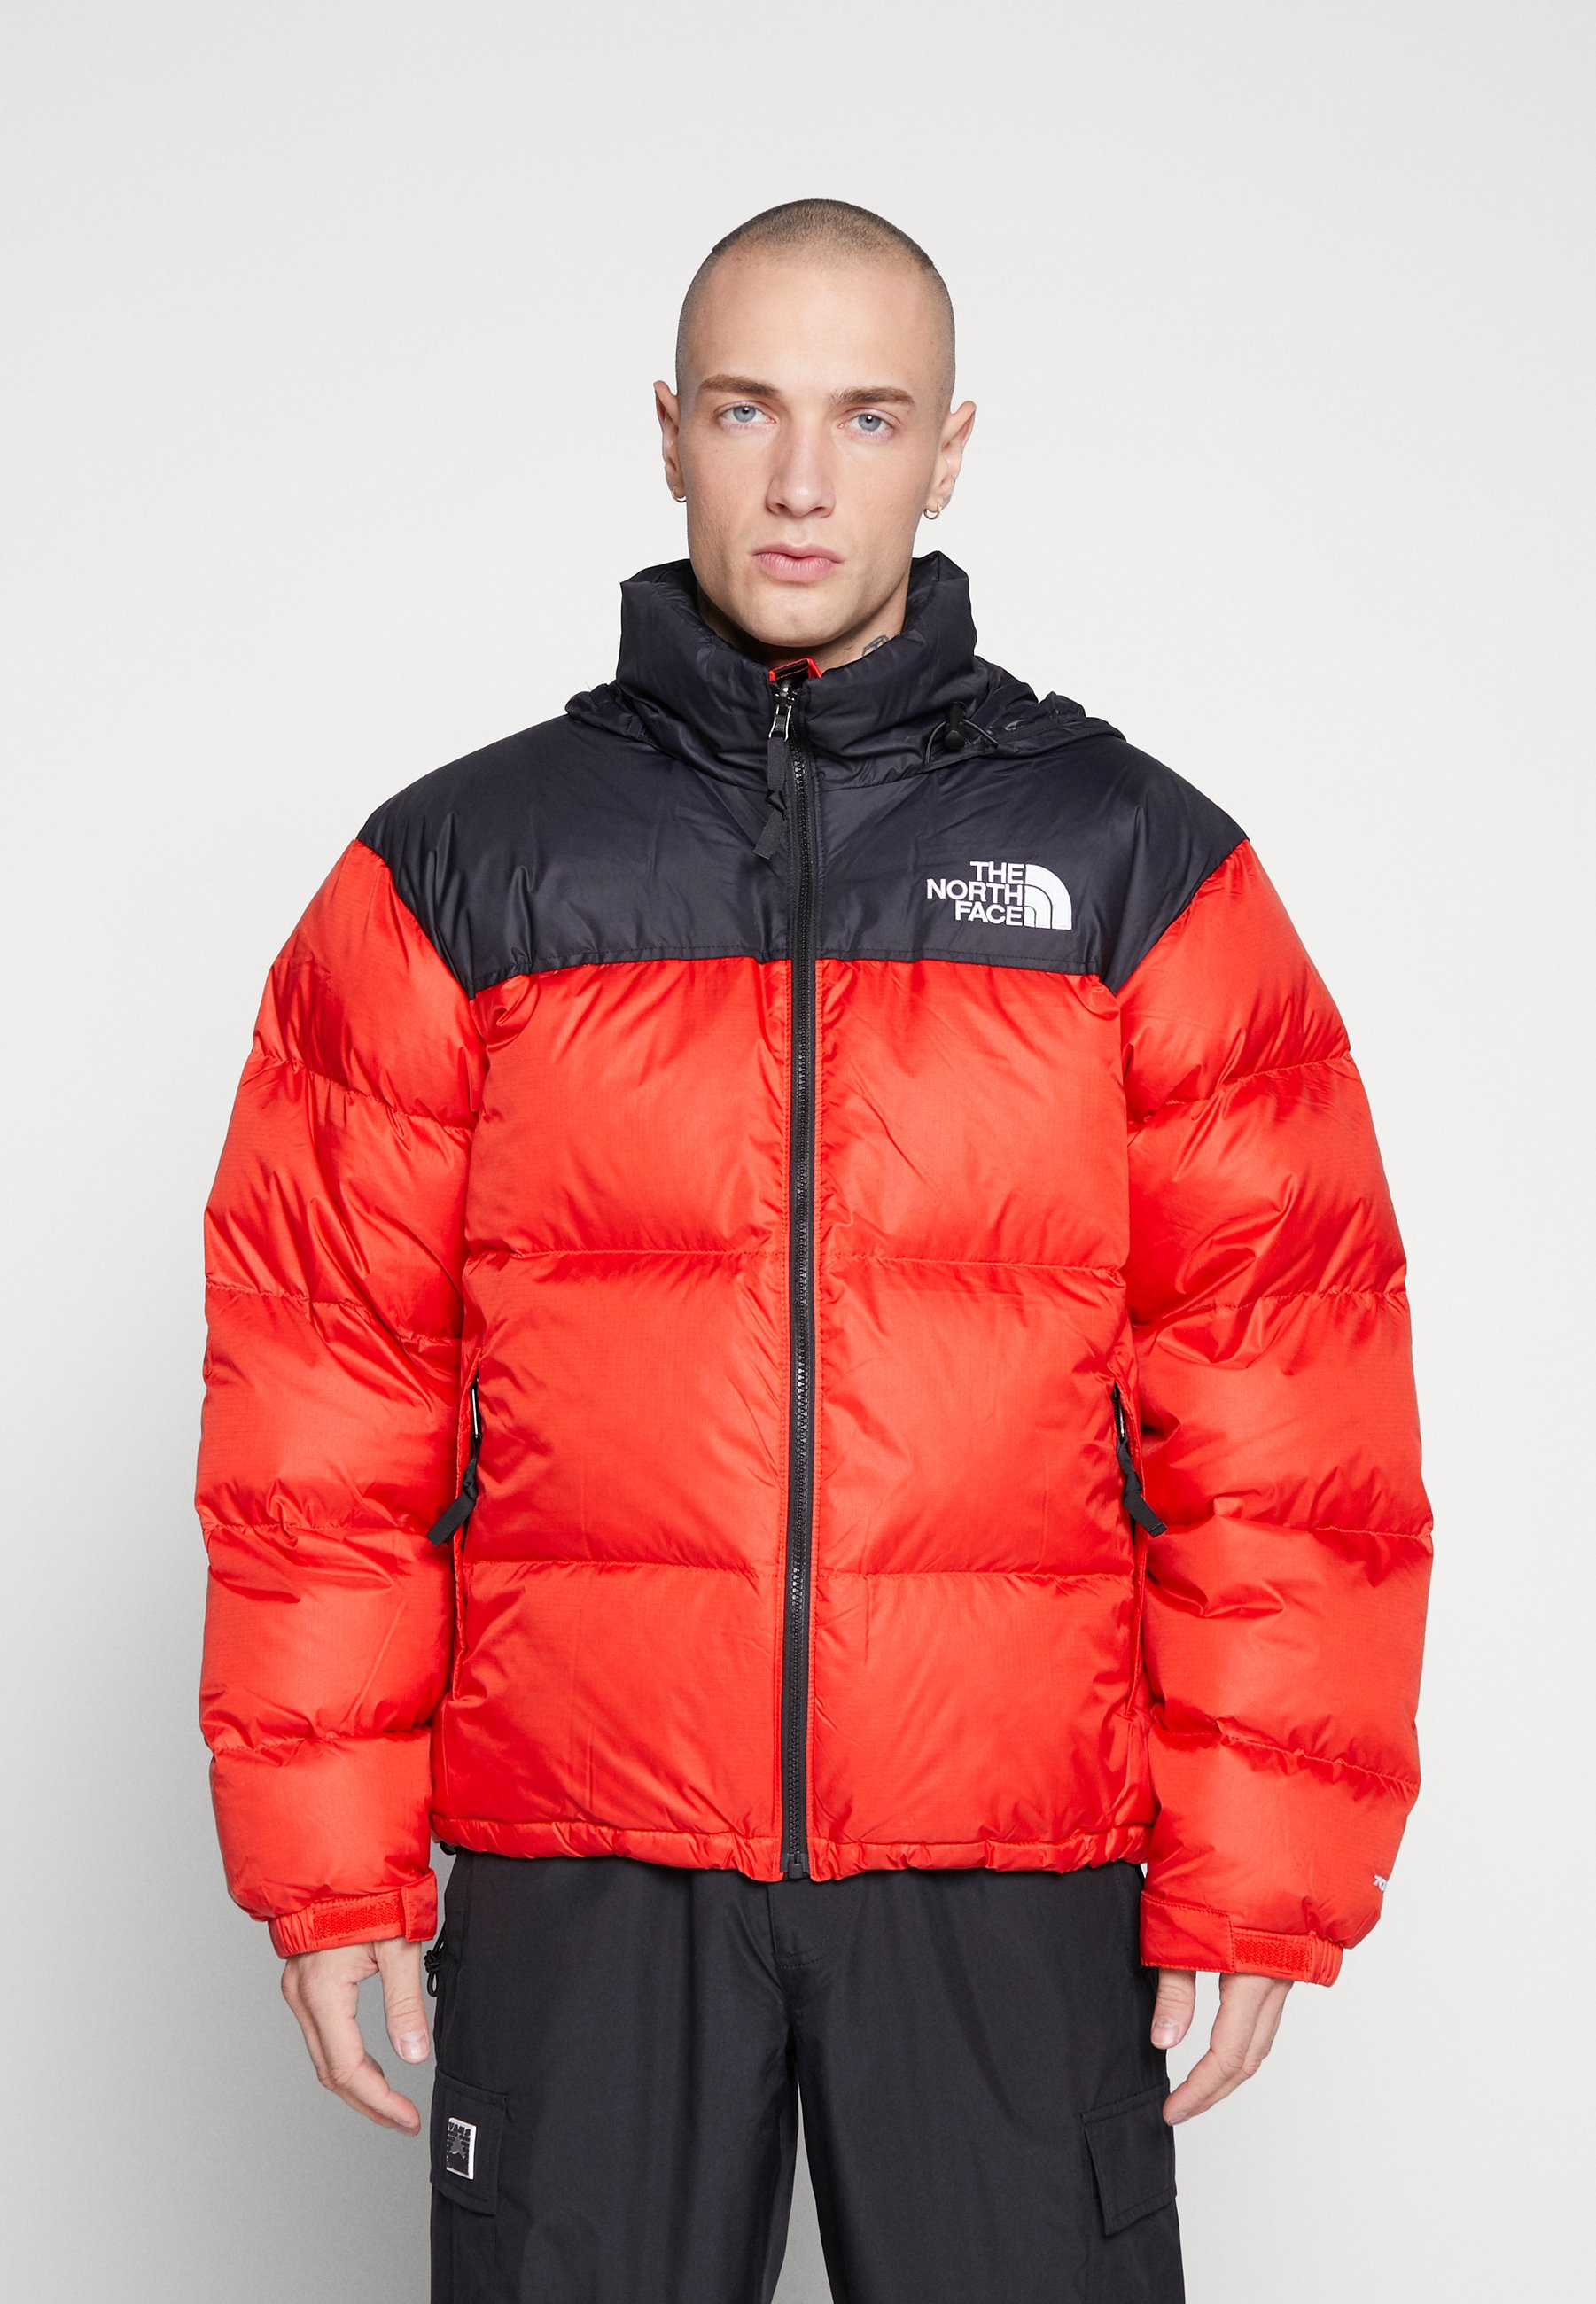 The North Face Online Shop | The North Face online bestellen